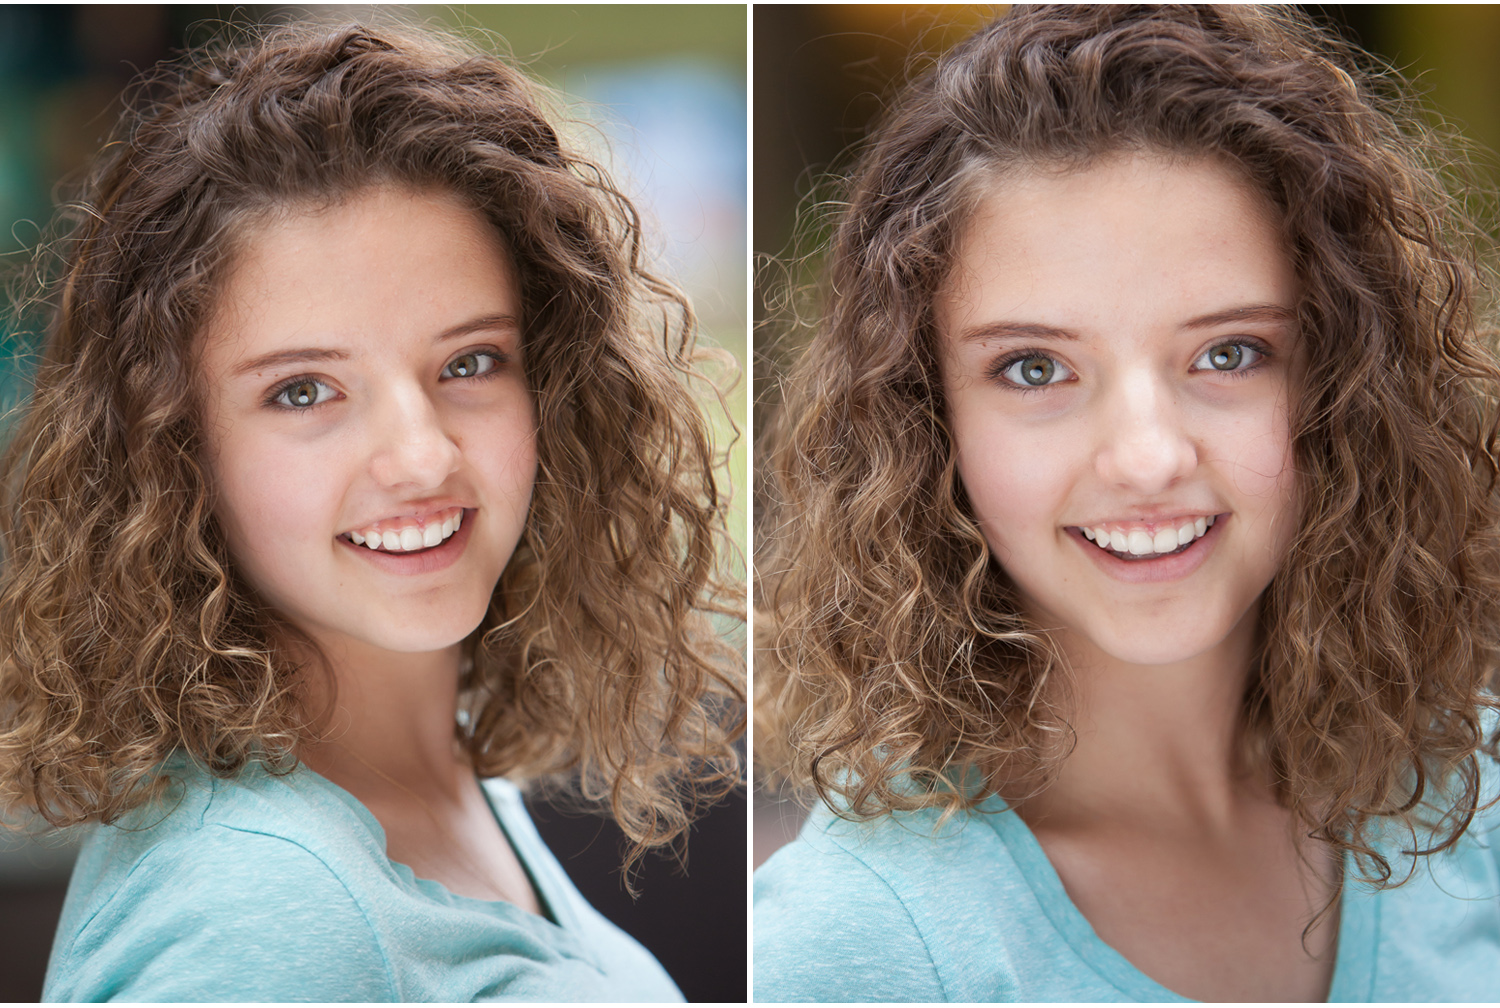 Children's natural light actor headshots in Denver with photographer Jennifer Koskinen, Merritt Portrait Studio